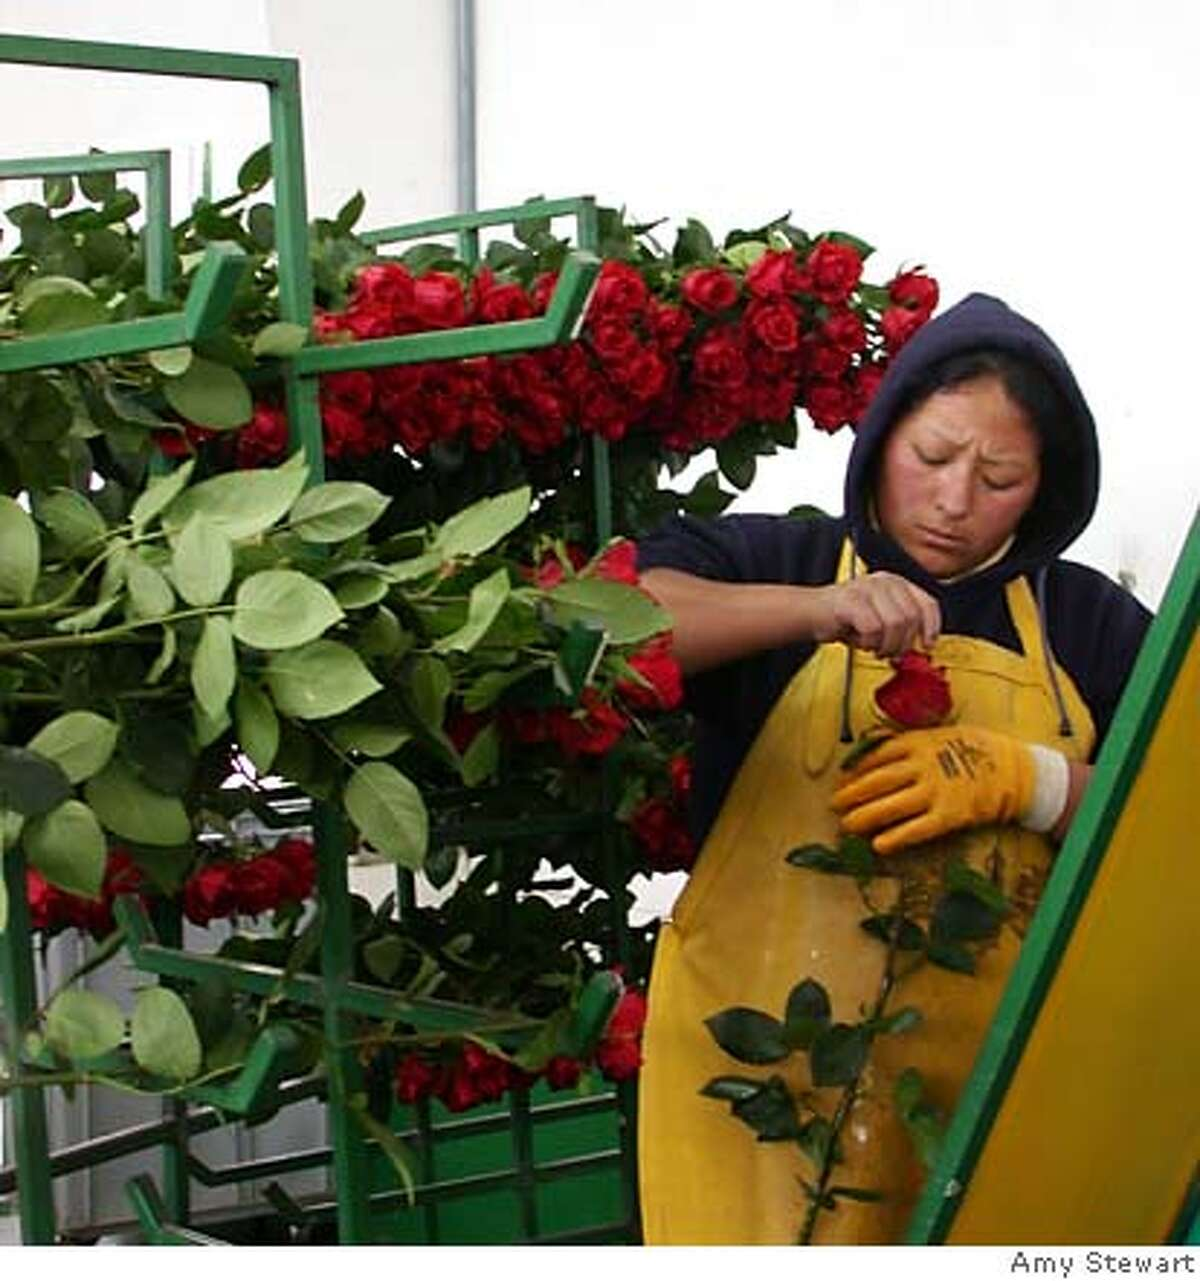 A worker tends to roses at Nevado Ecuador, one of the Latin American farms that uses either exclusively organic or sustainable techniques in its greenhouses. Photo by Amy Stewart